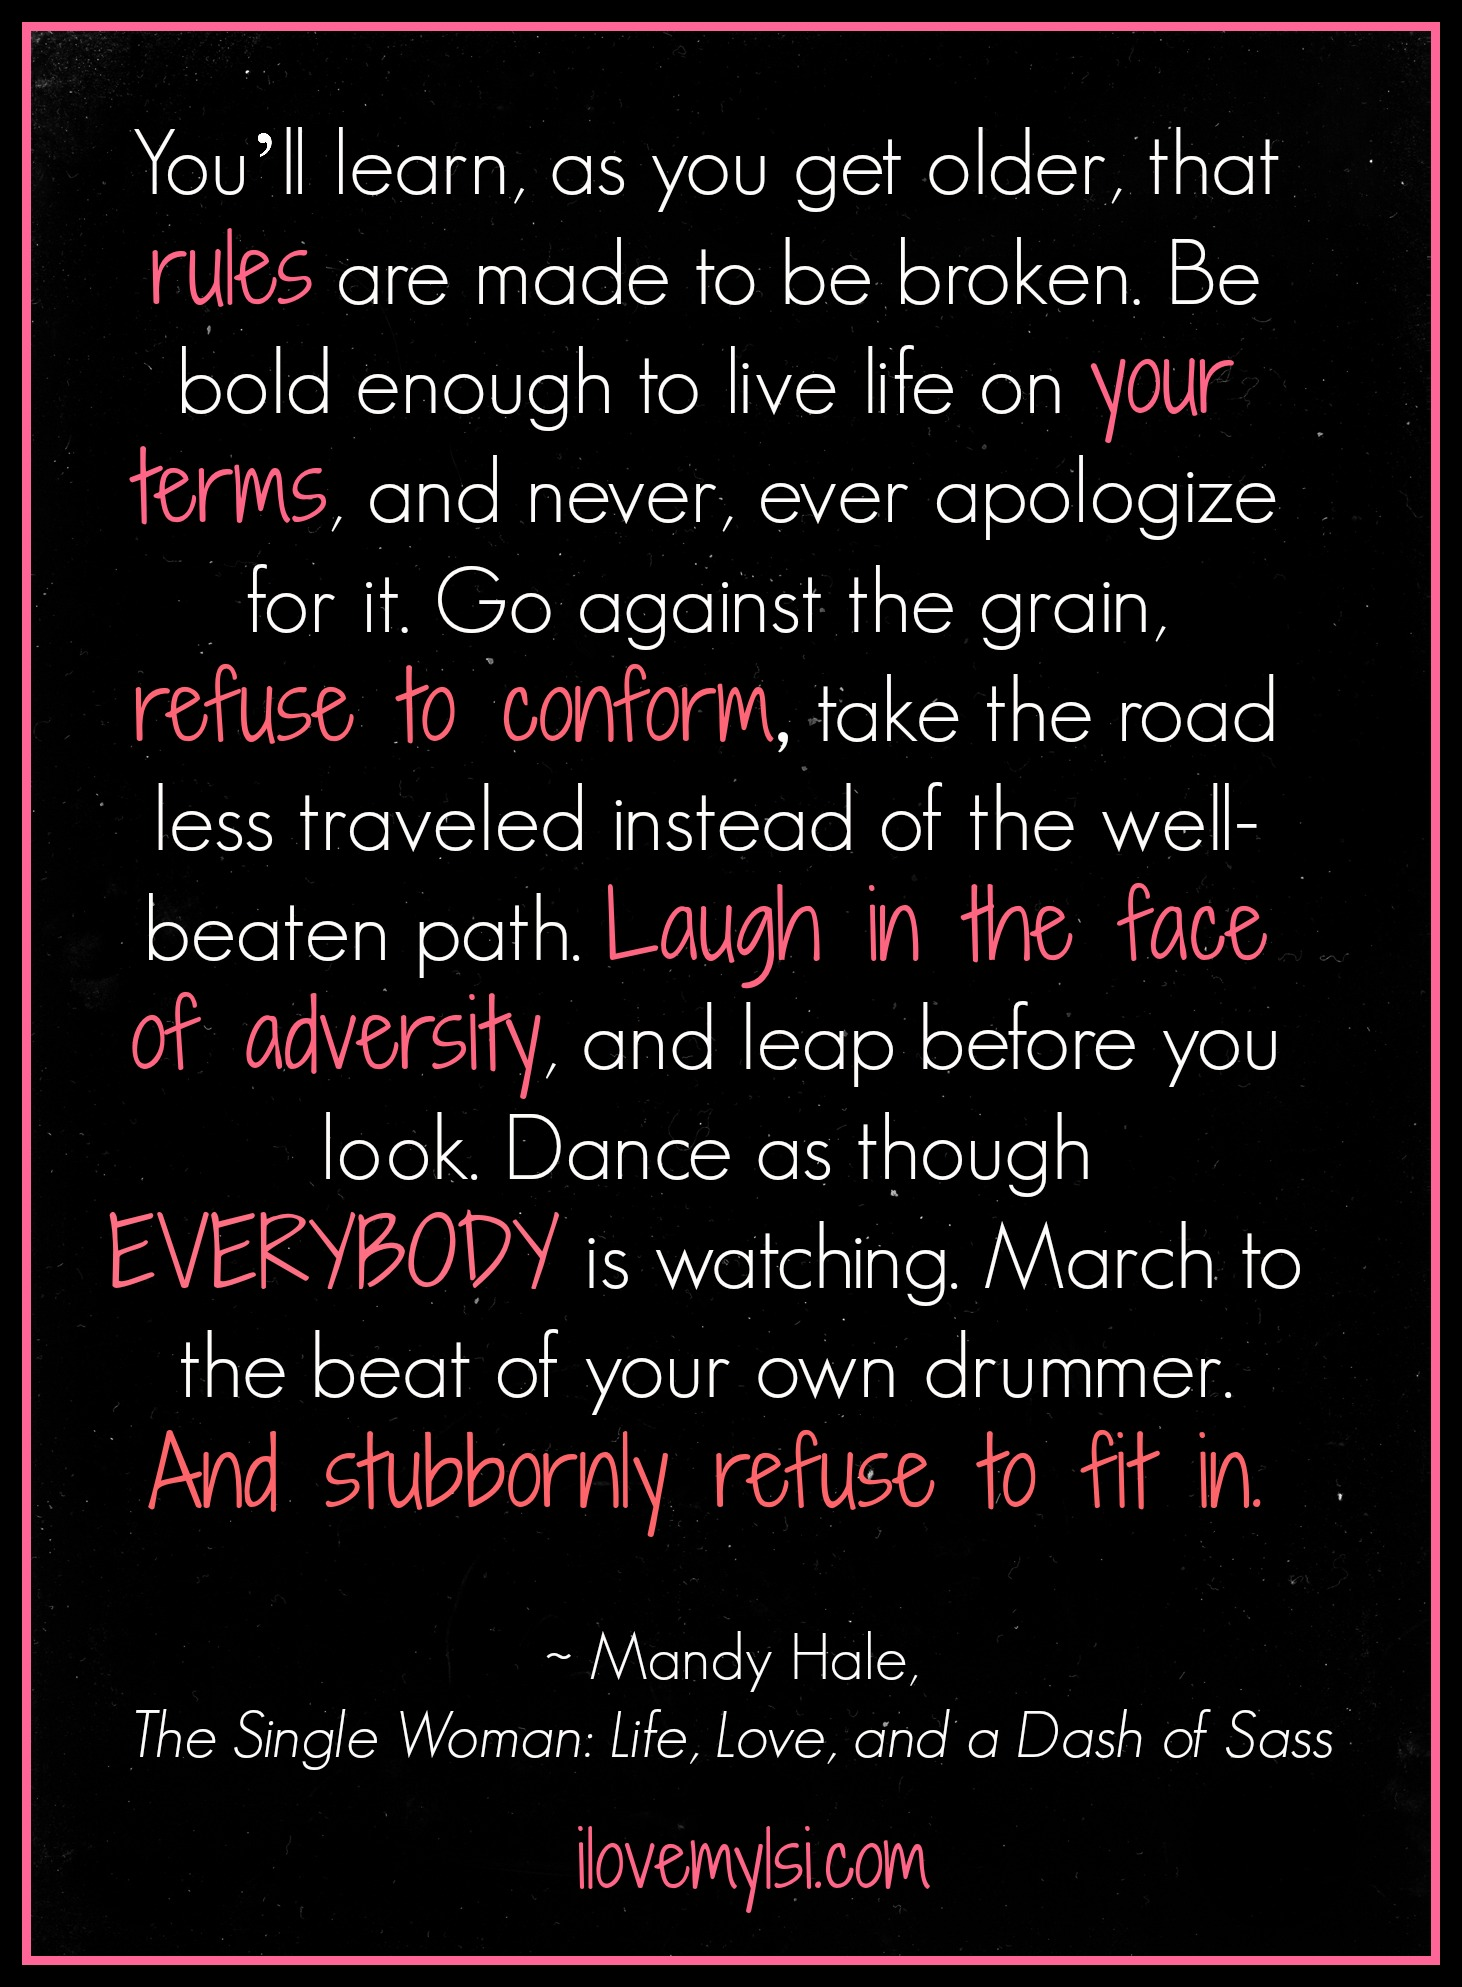 Mandy Hale Quotes Rules Are Made To Be Broken I Love My Lsi